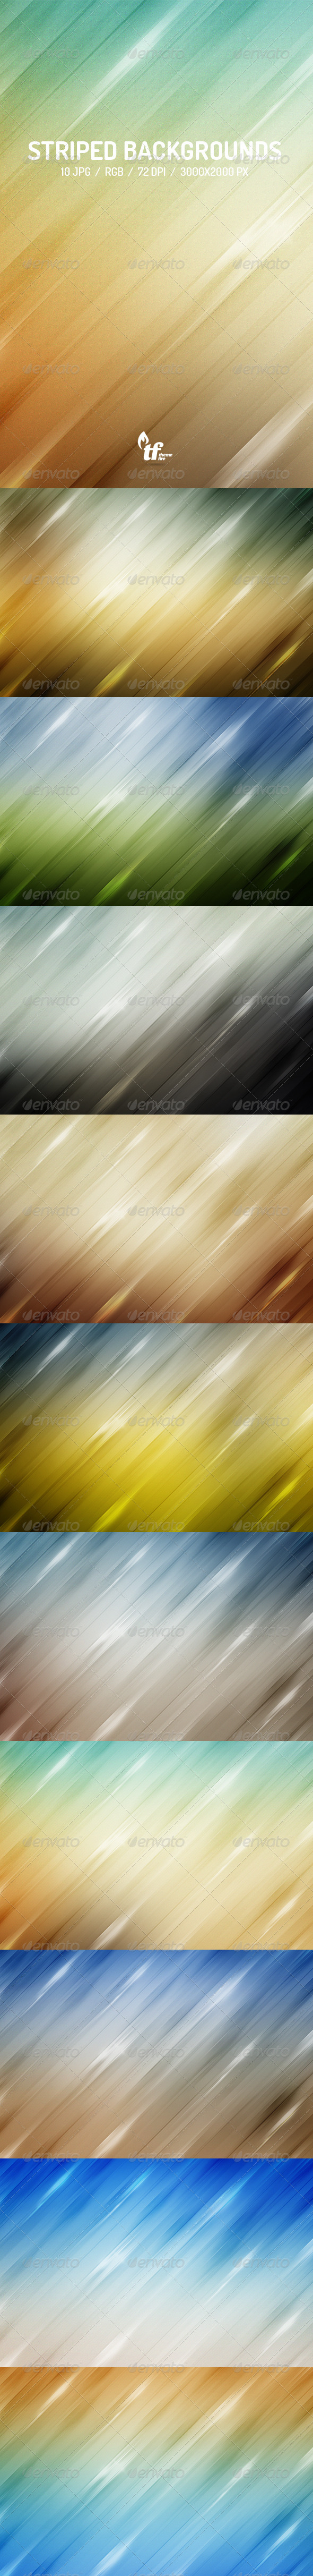 GraphicRiver Bright Striped Backgrounds 7461040